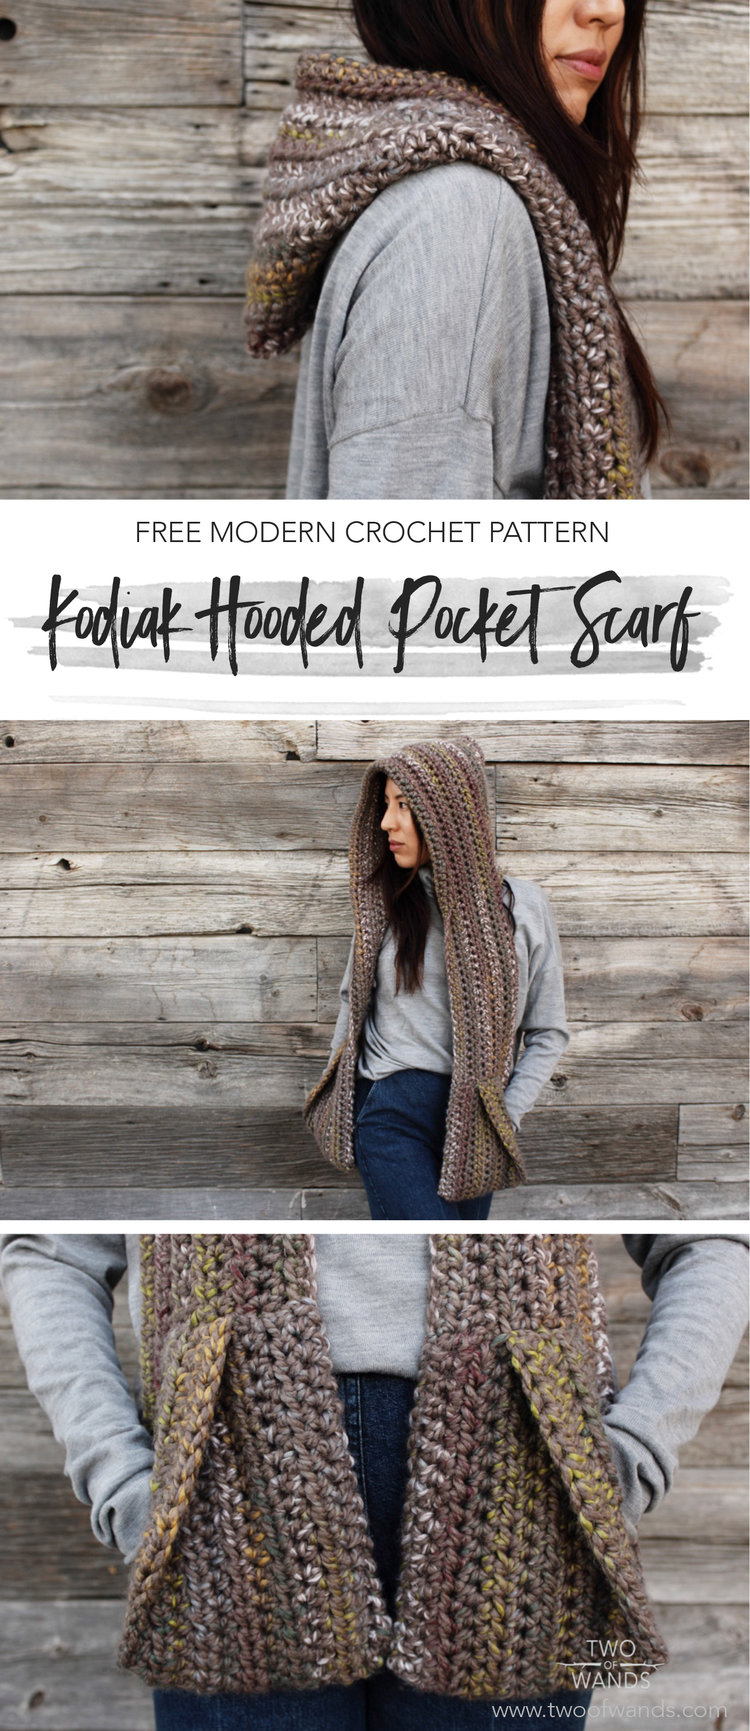 Kodiak Hooded Pocket Scarf Two Of Wands